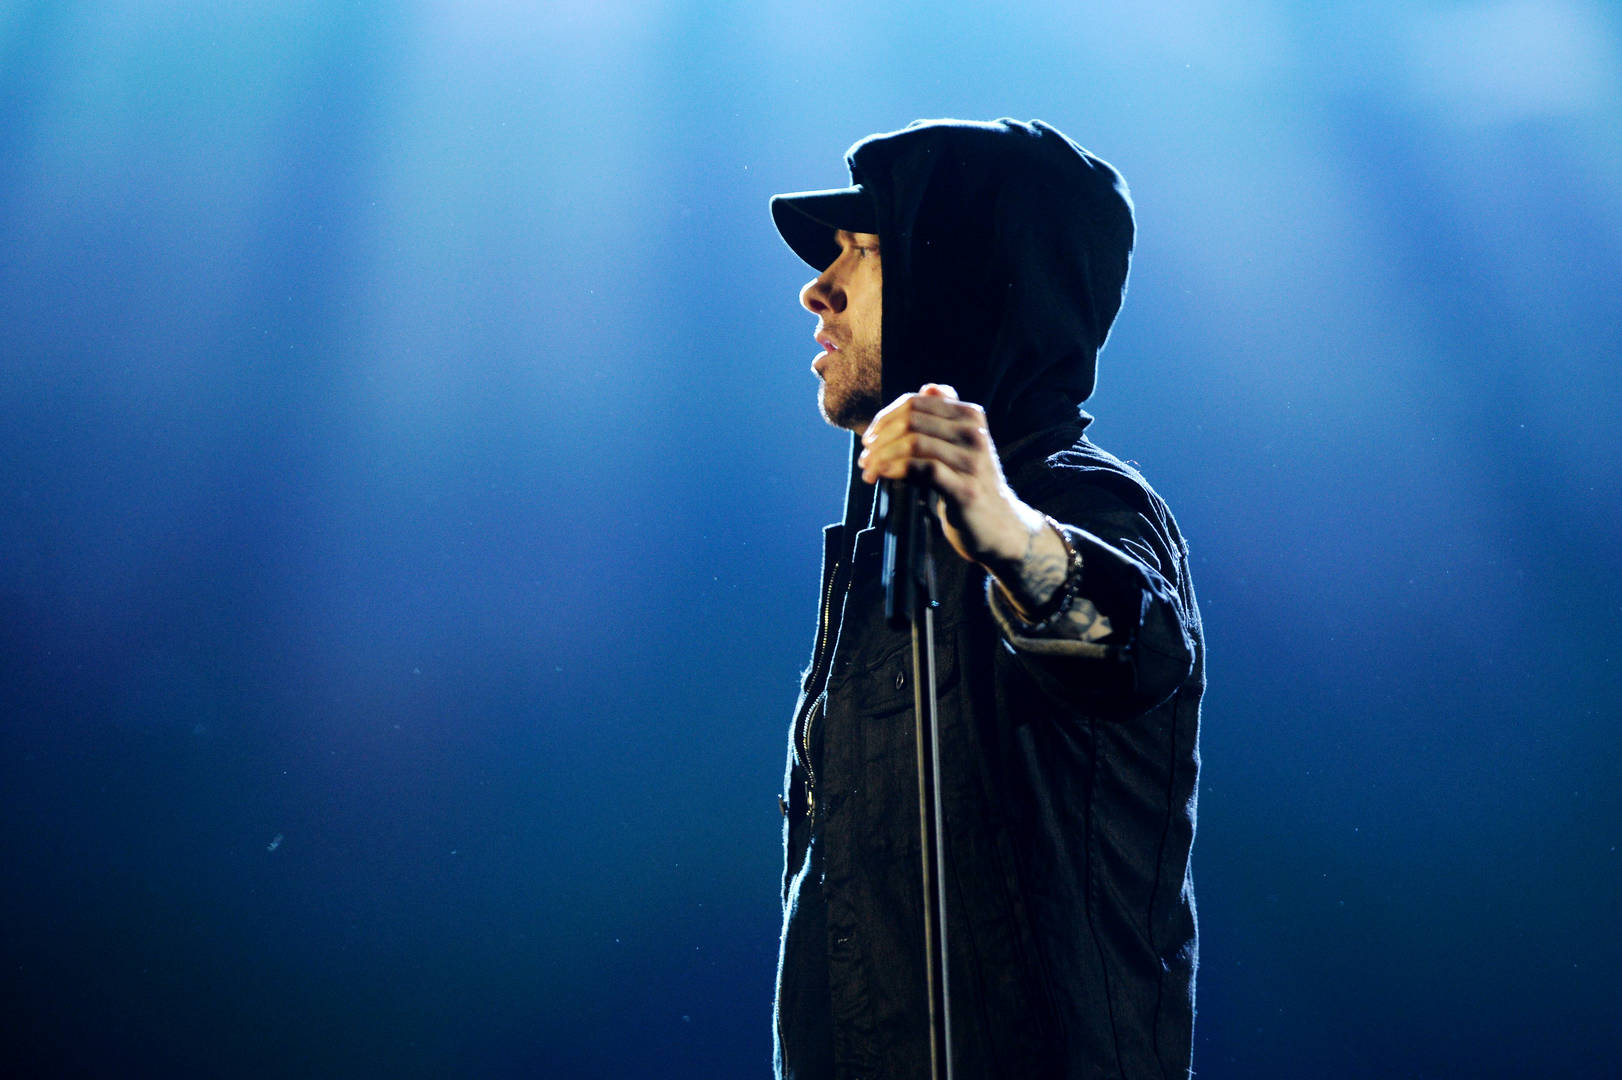 Eminem Shouts Out Abu Dhabi After Ridiculously Packed Concert